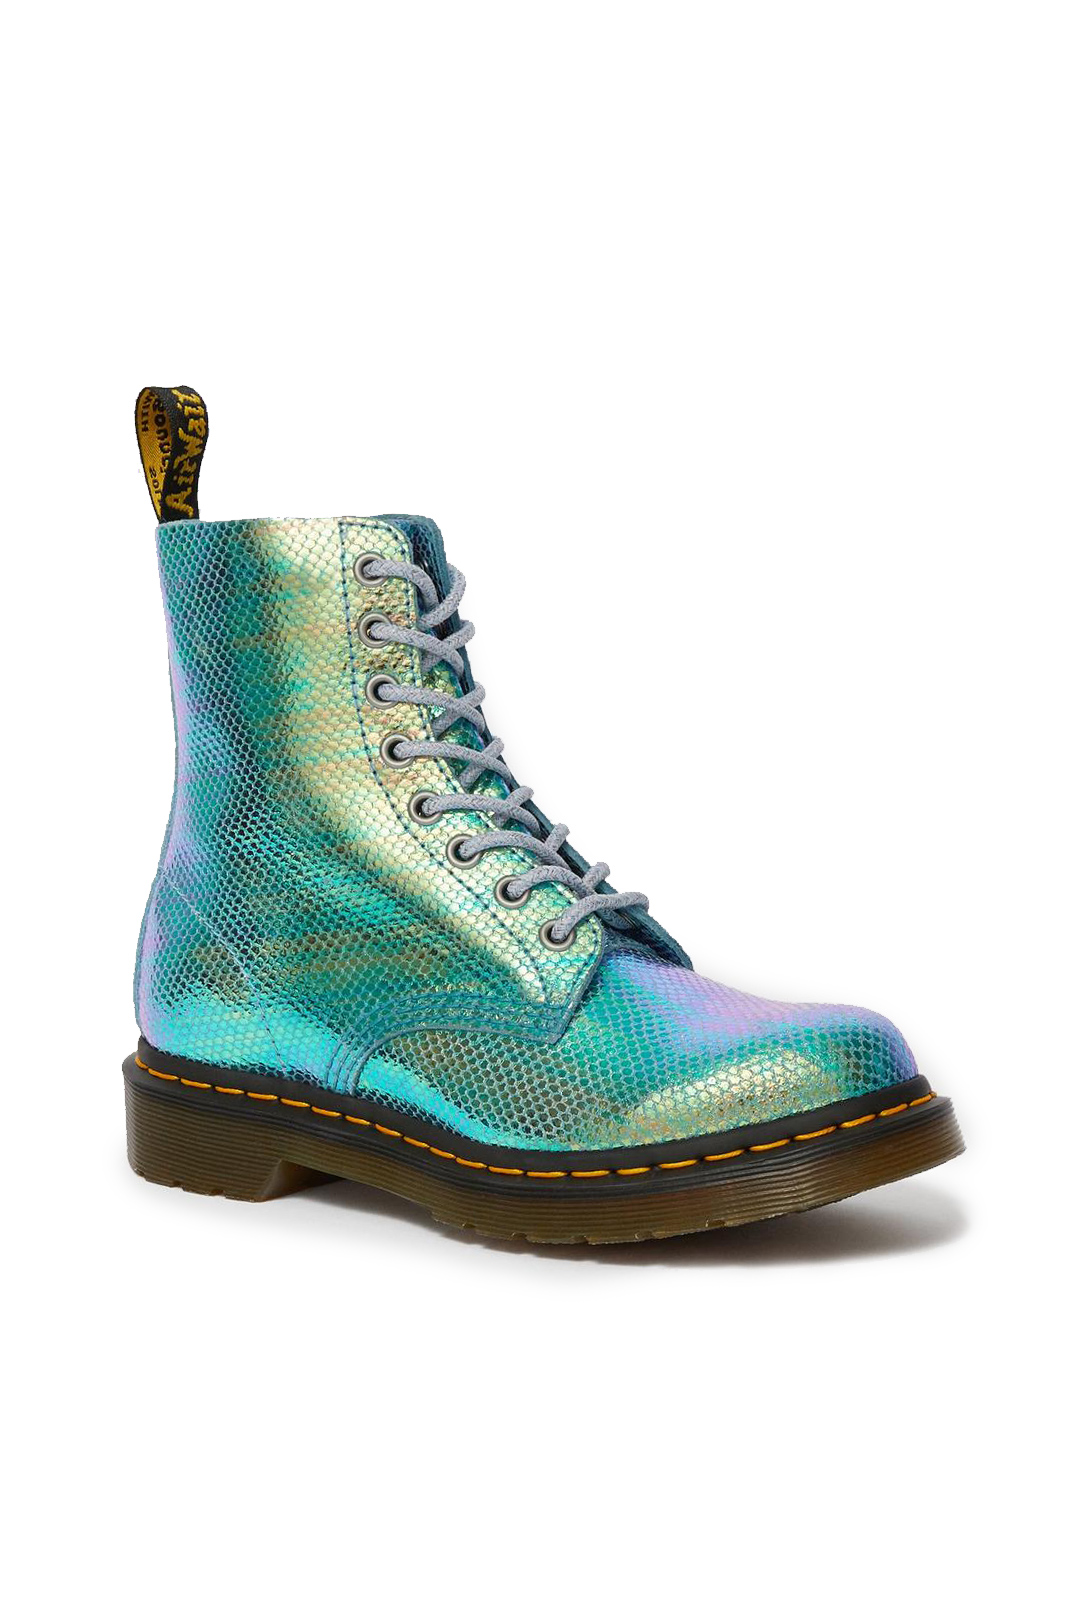 1460 Pascal Iridescent Mermaid Blue